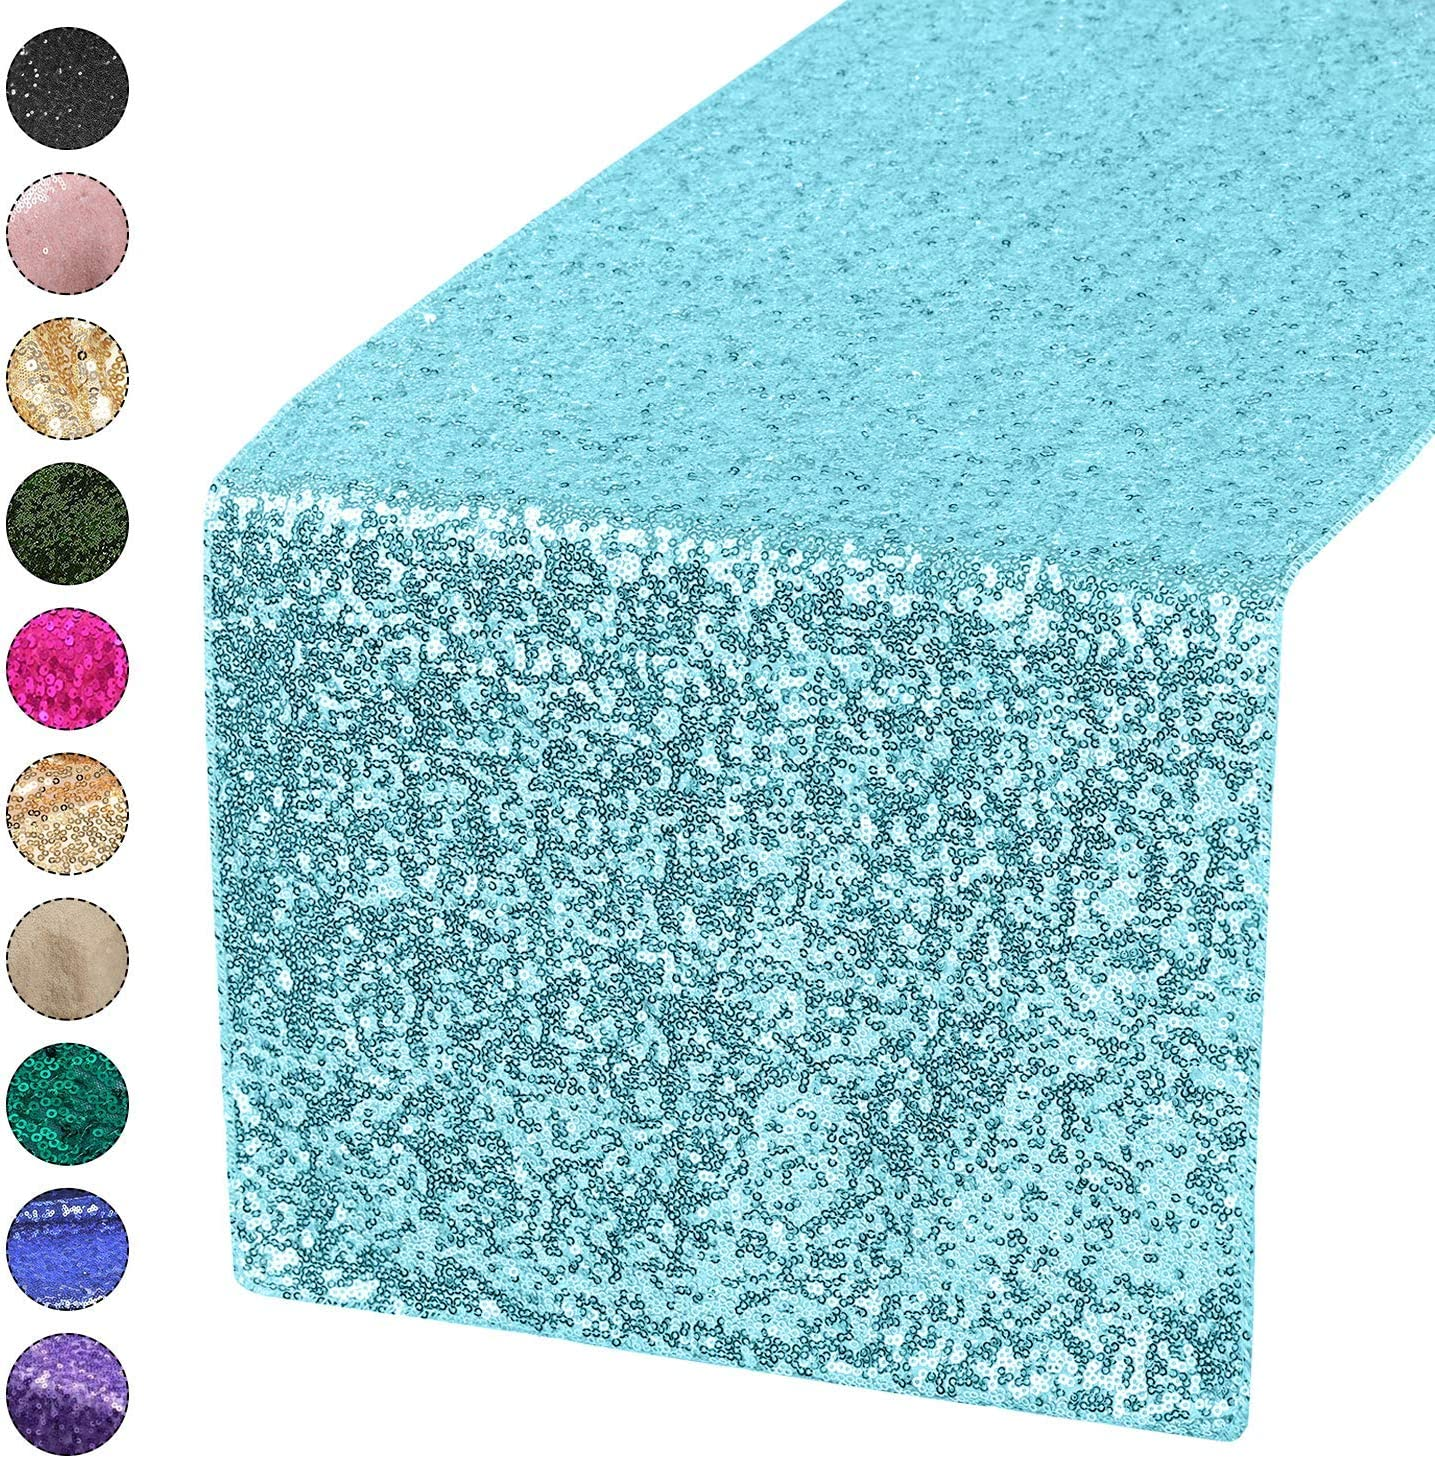 1 d/écoration de table Tissu Trimming Shop Lot de chemins de table sets de table /à paillettes 30 cm x 274 cm pour anniversaire fuchsia f/ête pr/énatale mariage /év/énements